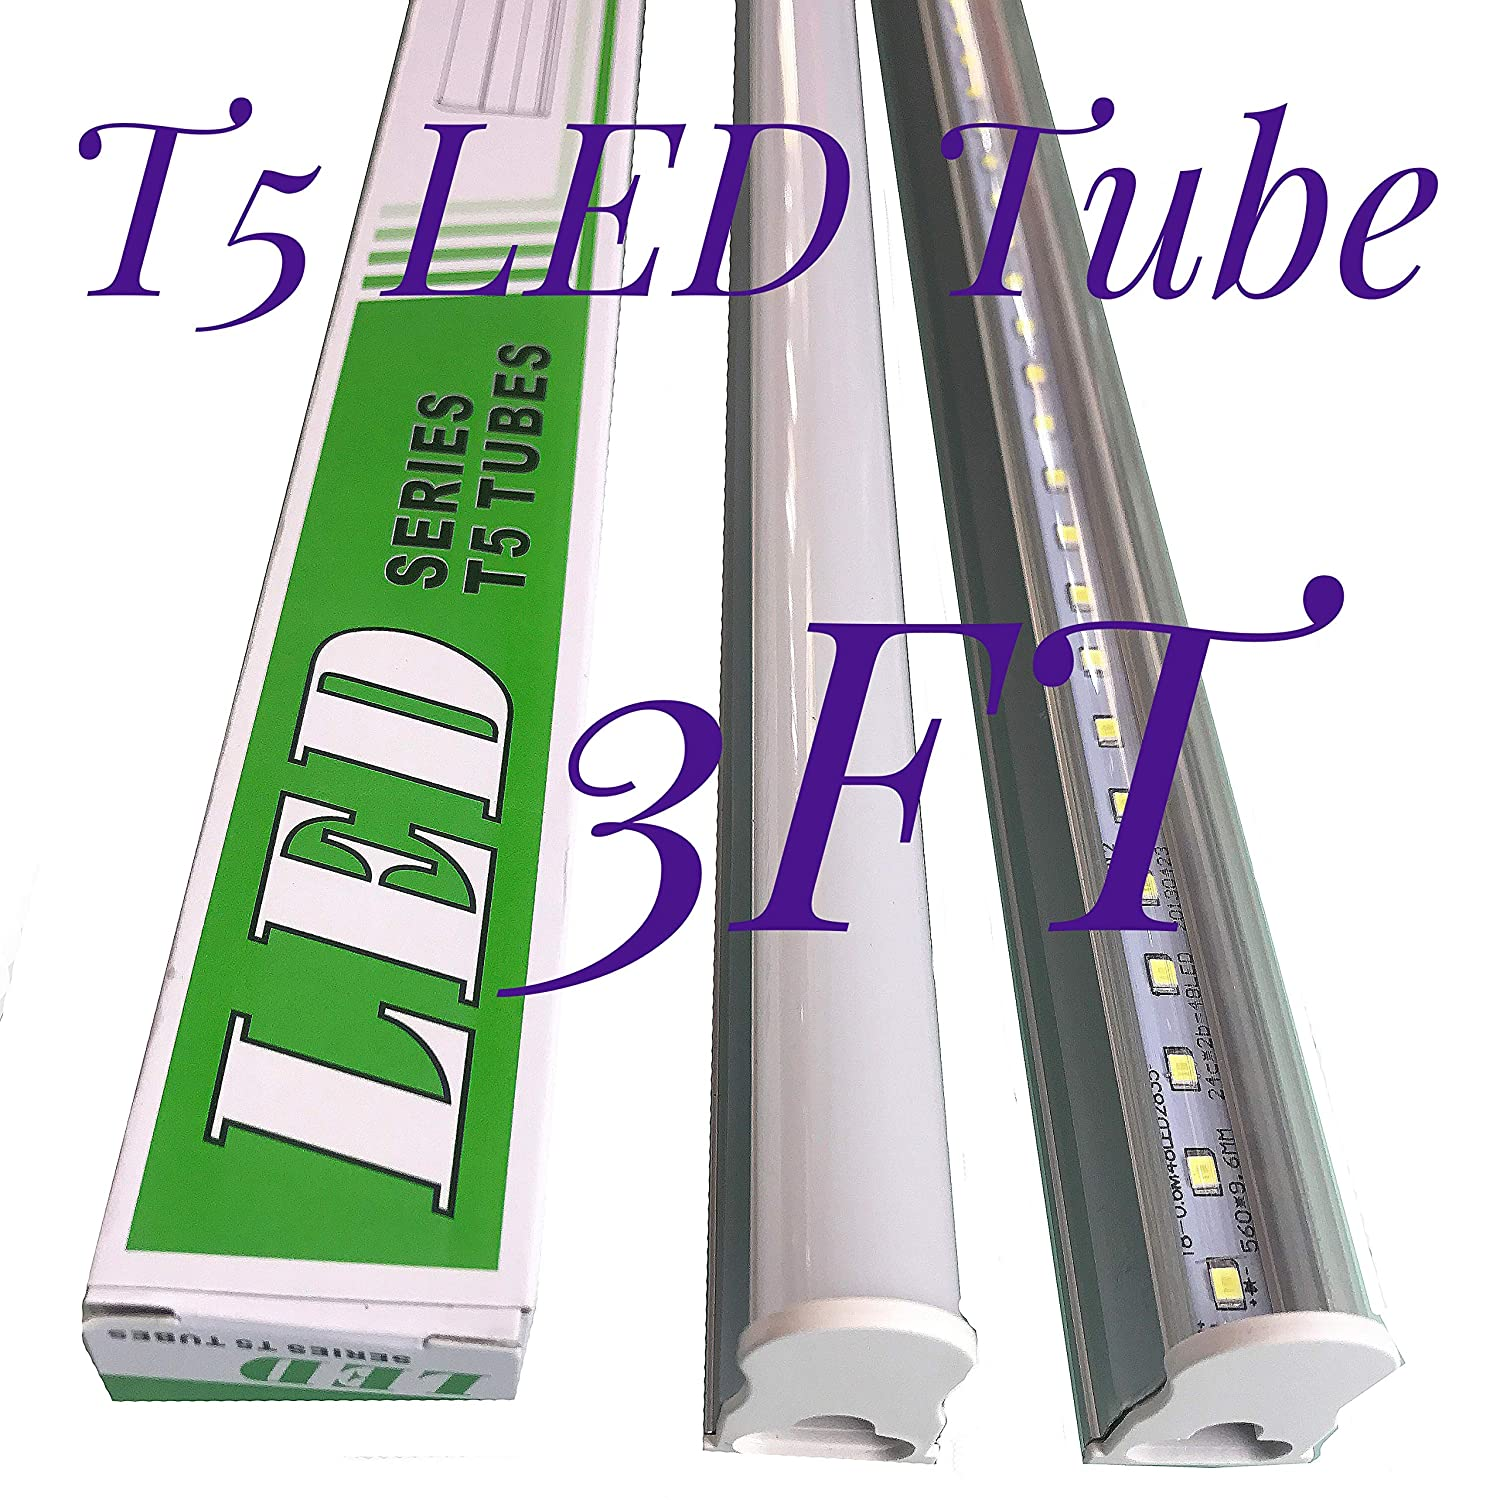 Cidasxl T5 Led Tube For 3 Feet 14w 40w Equivalent 72pcs Dol Control Wiring Diagram 6000k 1600 Lumens 50 000 Hours Transparent Cover Double Sided Connection1